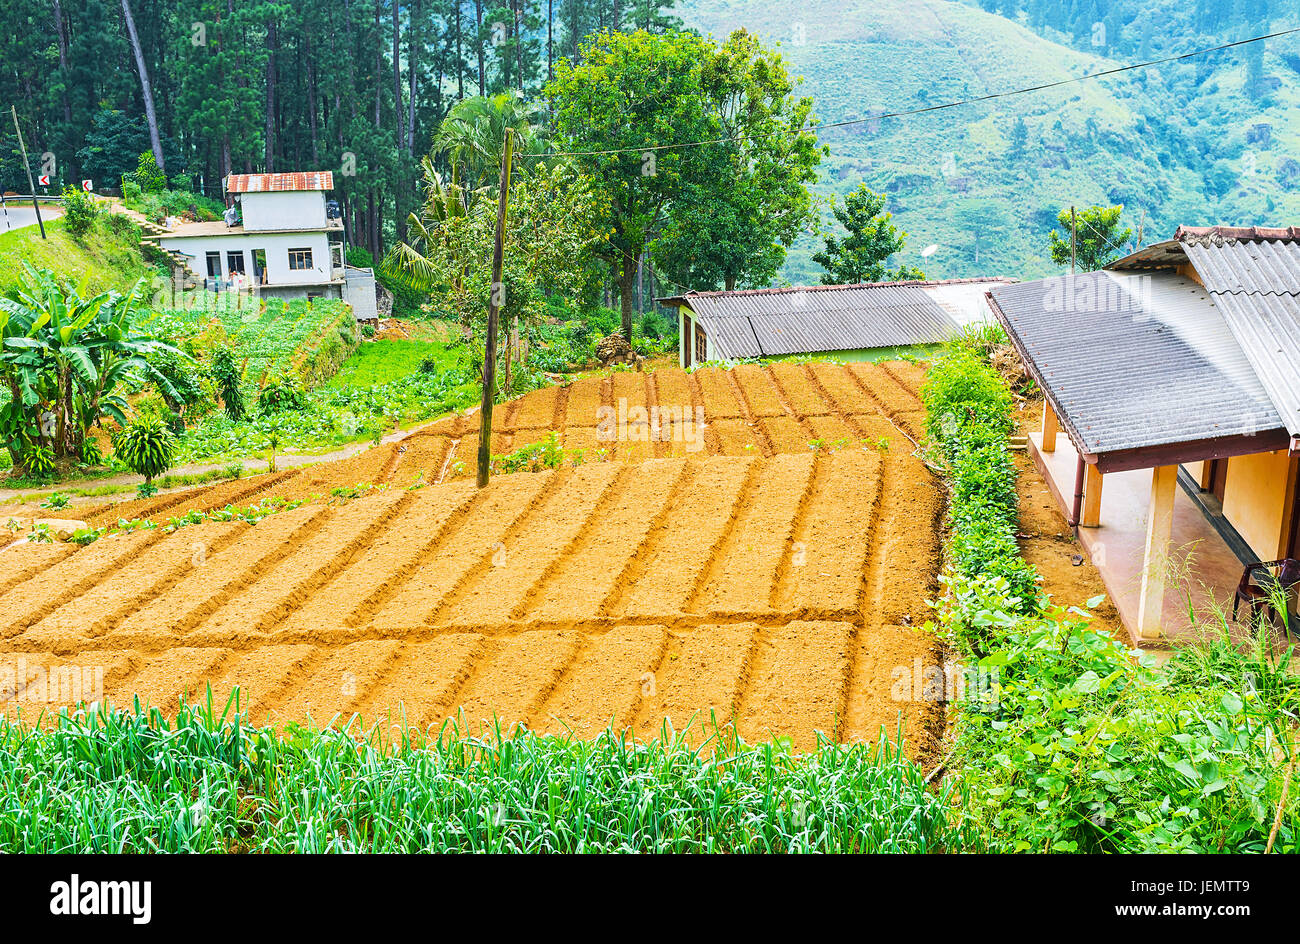 The Plowed Lands Of The Small Kitchen Garden Of Sri Lankan Farmers